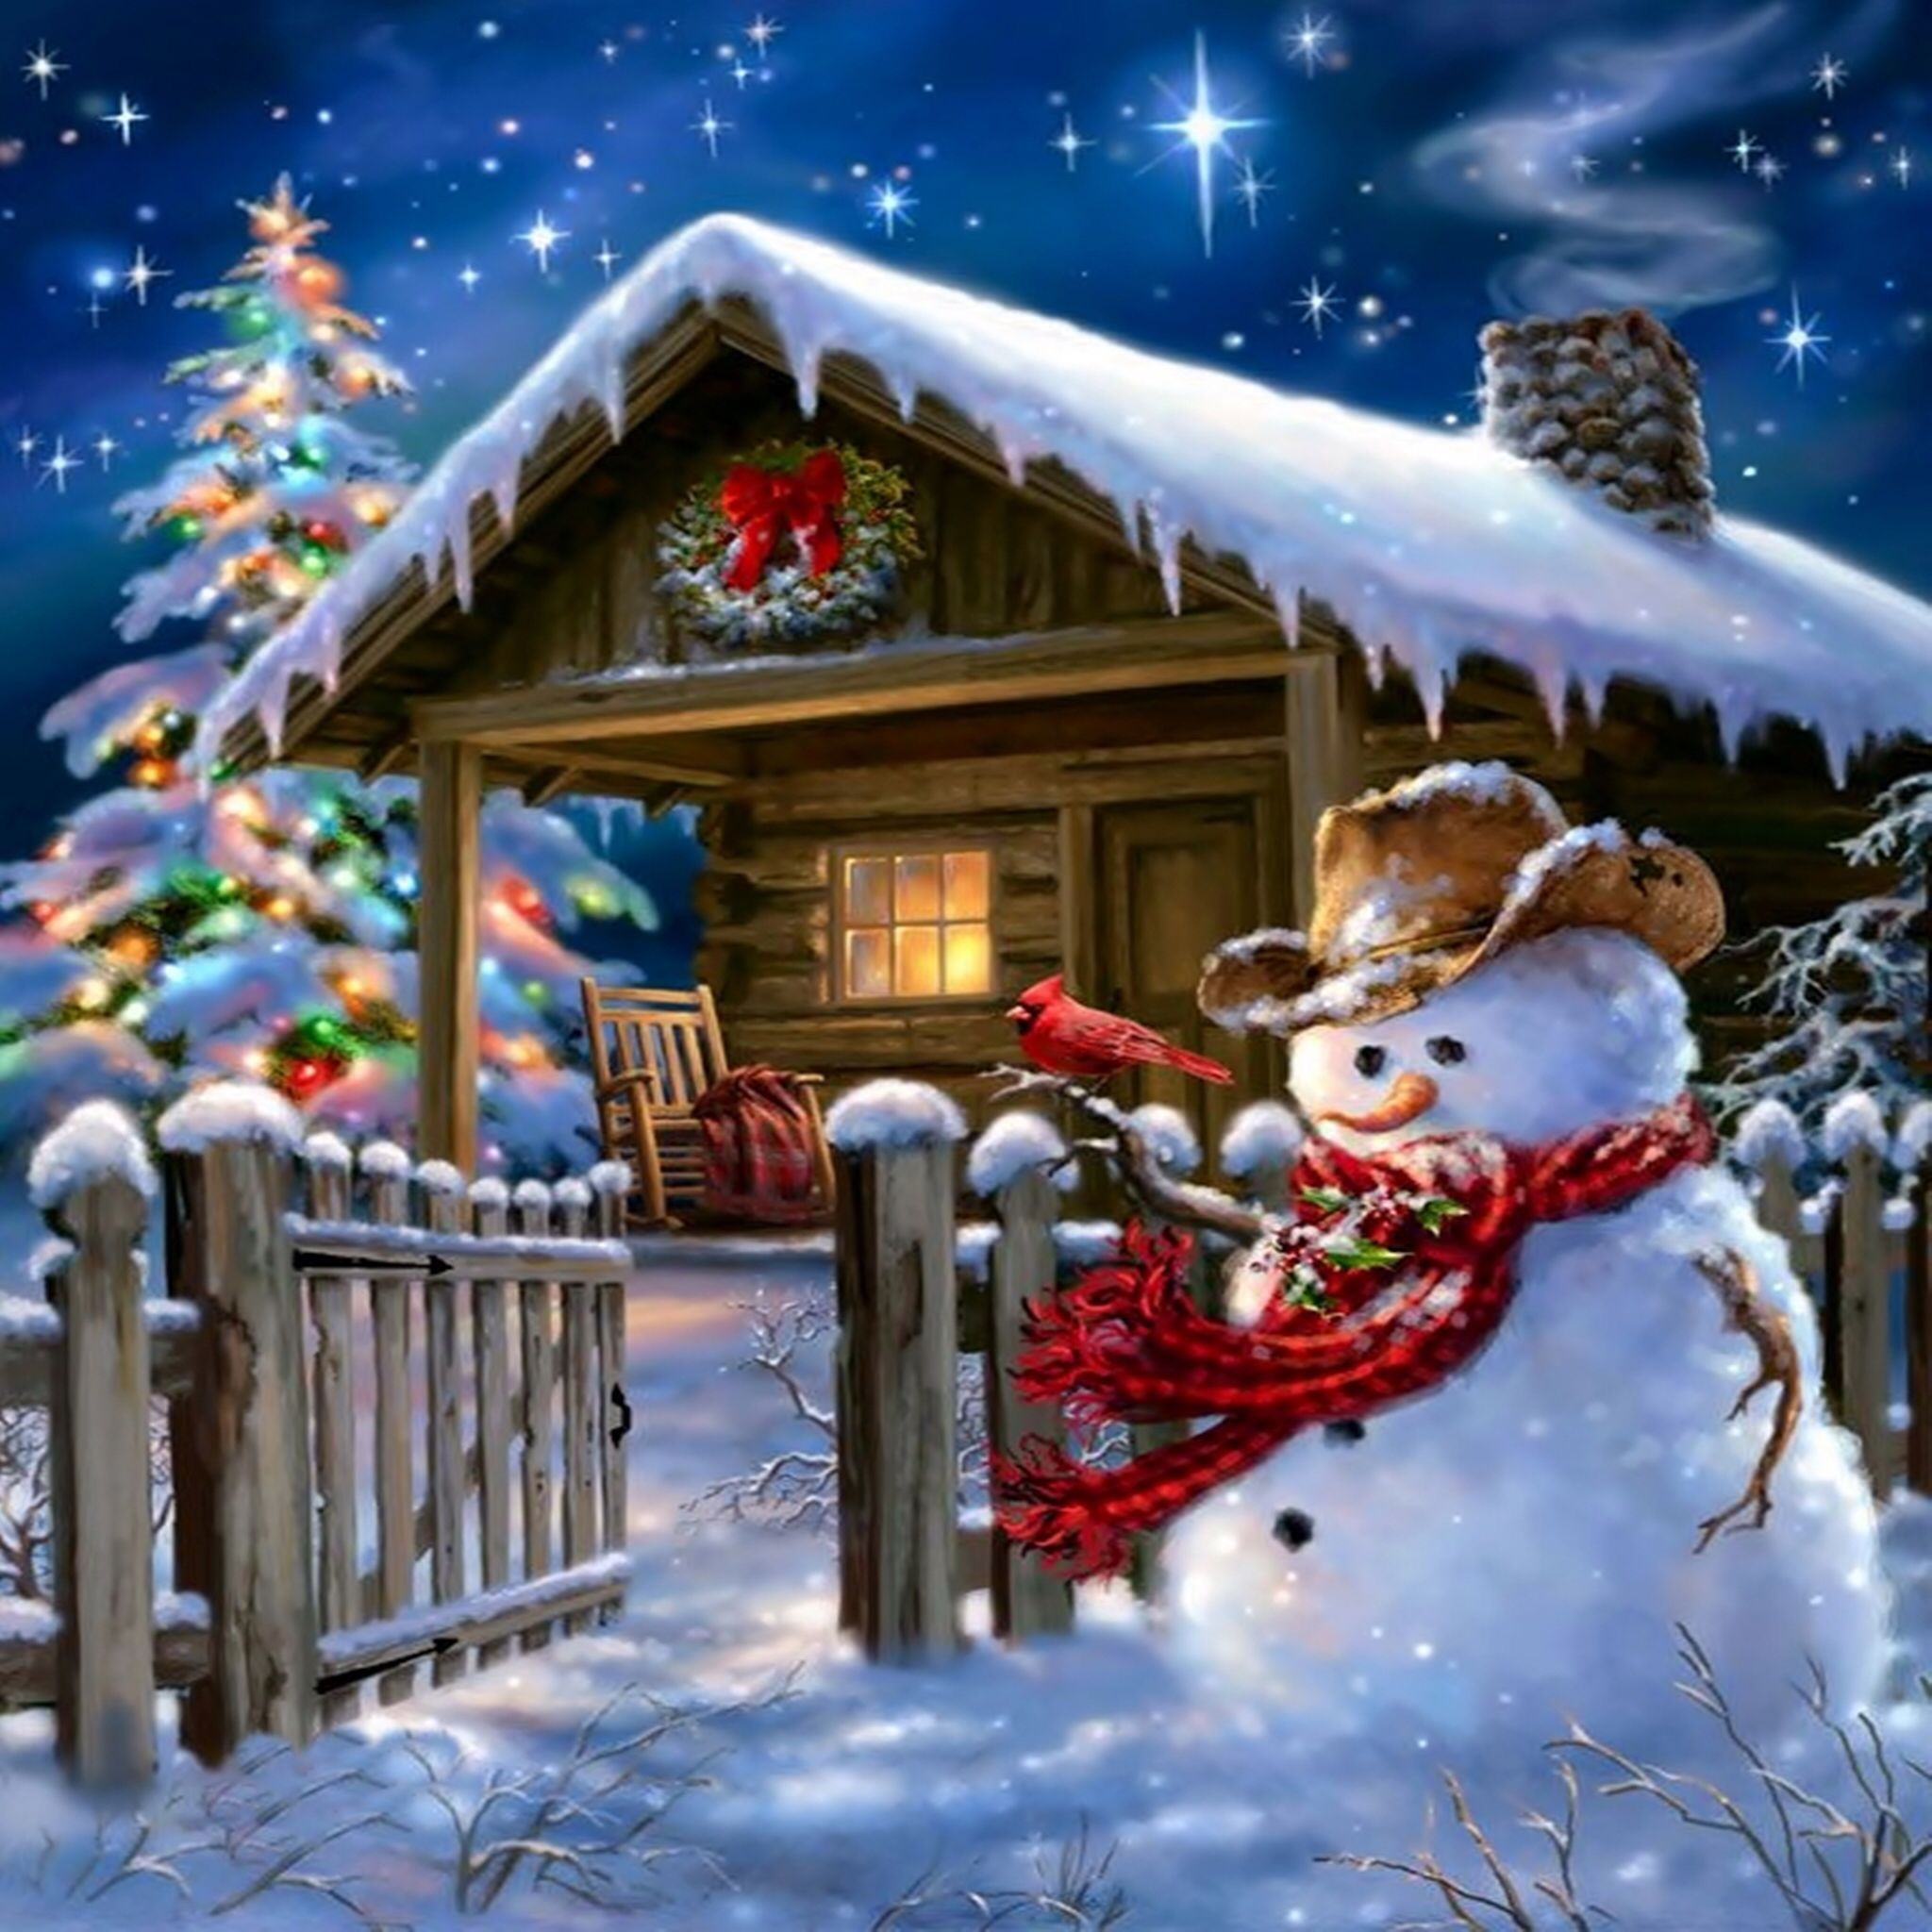 Check Out This Wallpaper For Your Ipad Http Zedge Net W10785841 Src Ios V 2 5 Via Zedge Christmas Pictures Country Christmas Christmas Art